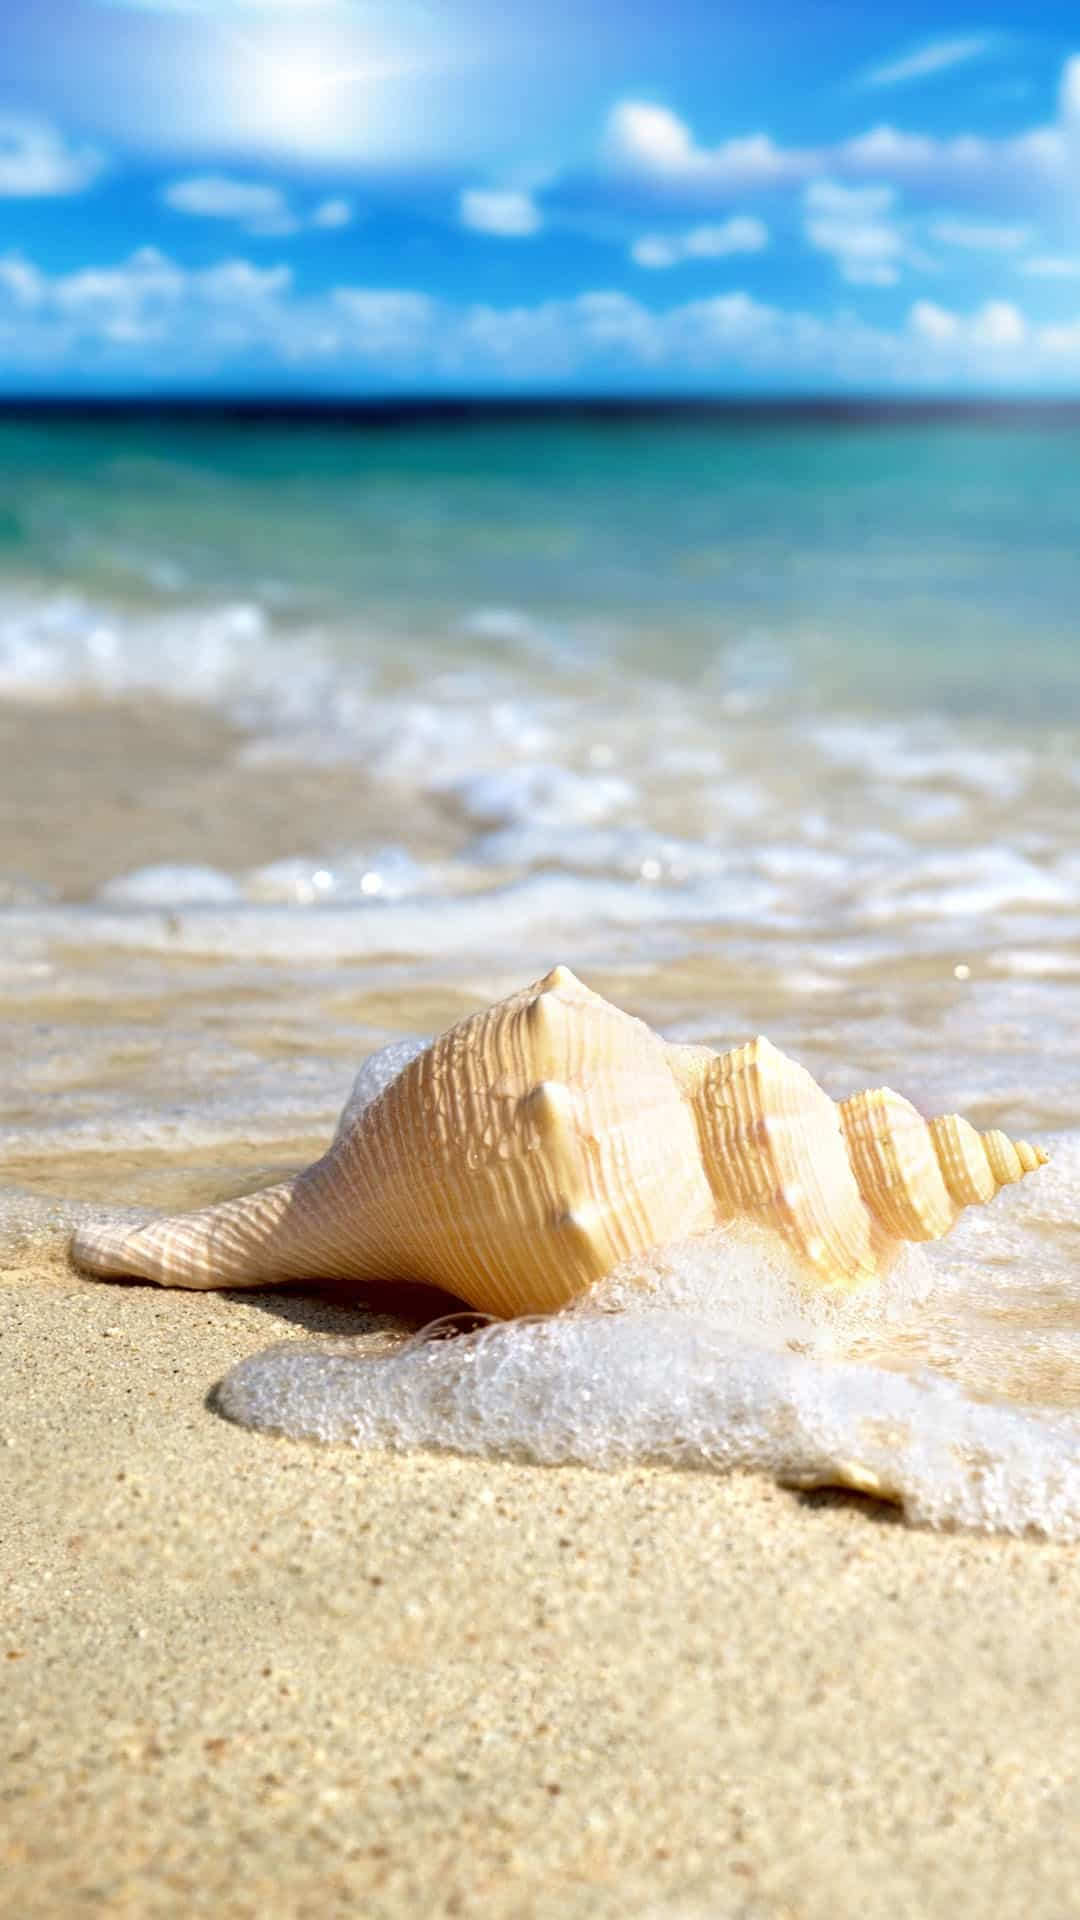 White Seashell In Waves Android Wallpaper